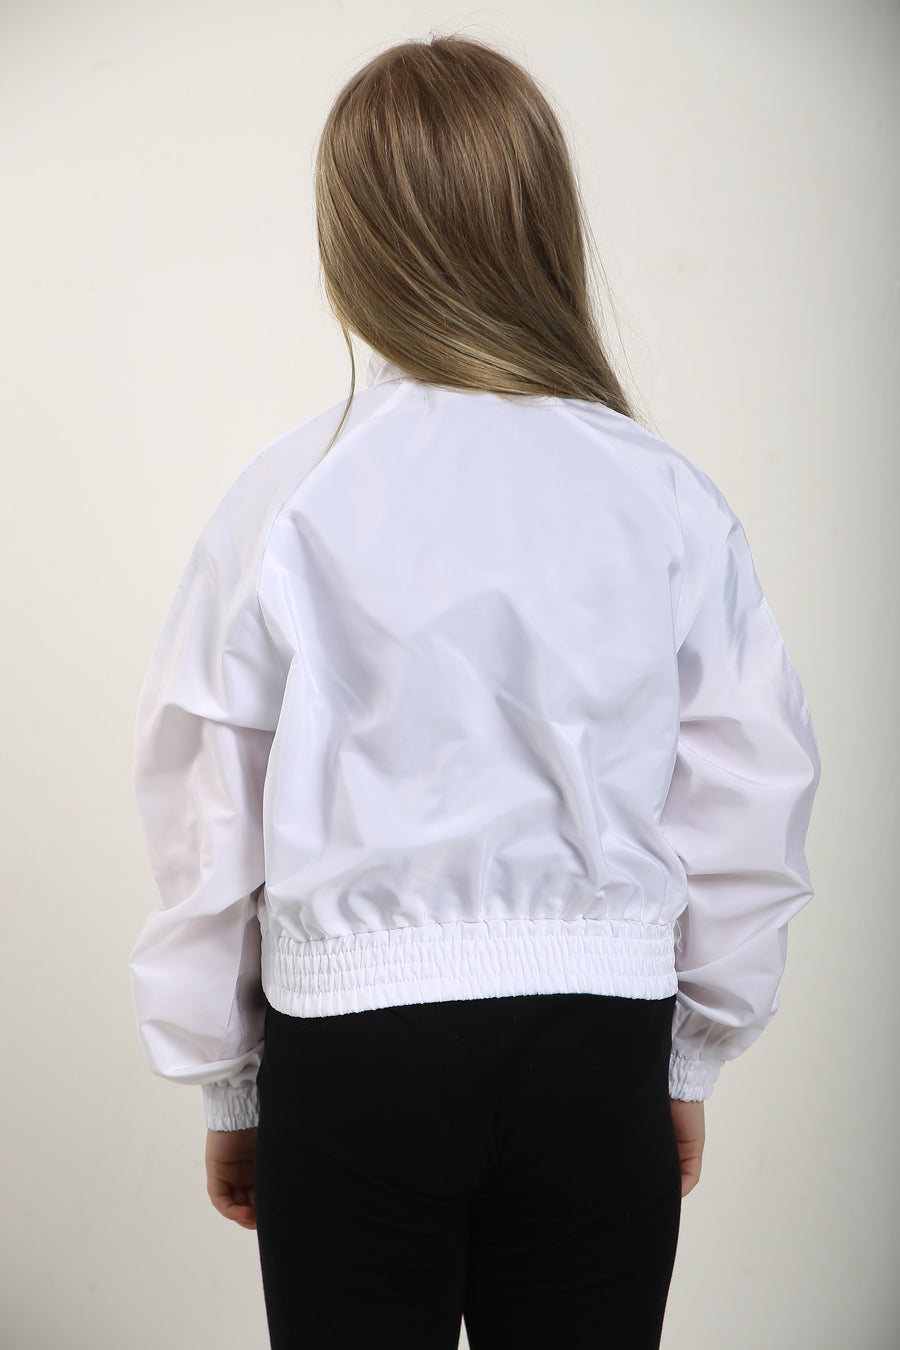 Kids White Festival Wind Breaker Crop Jacket - Emma